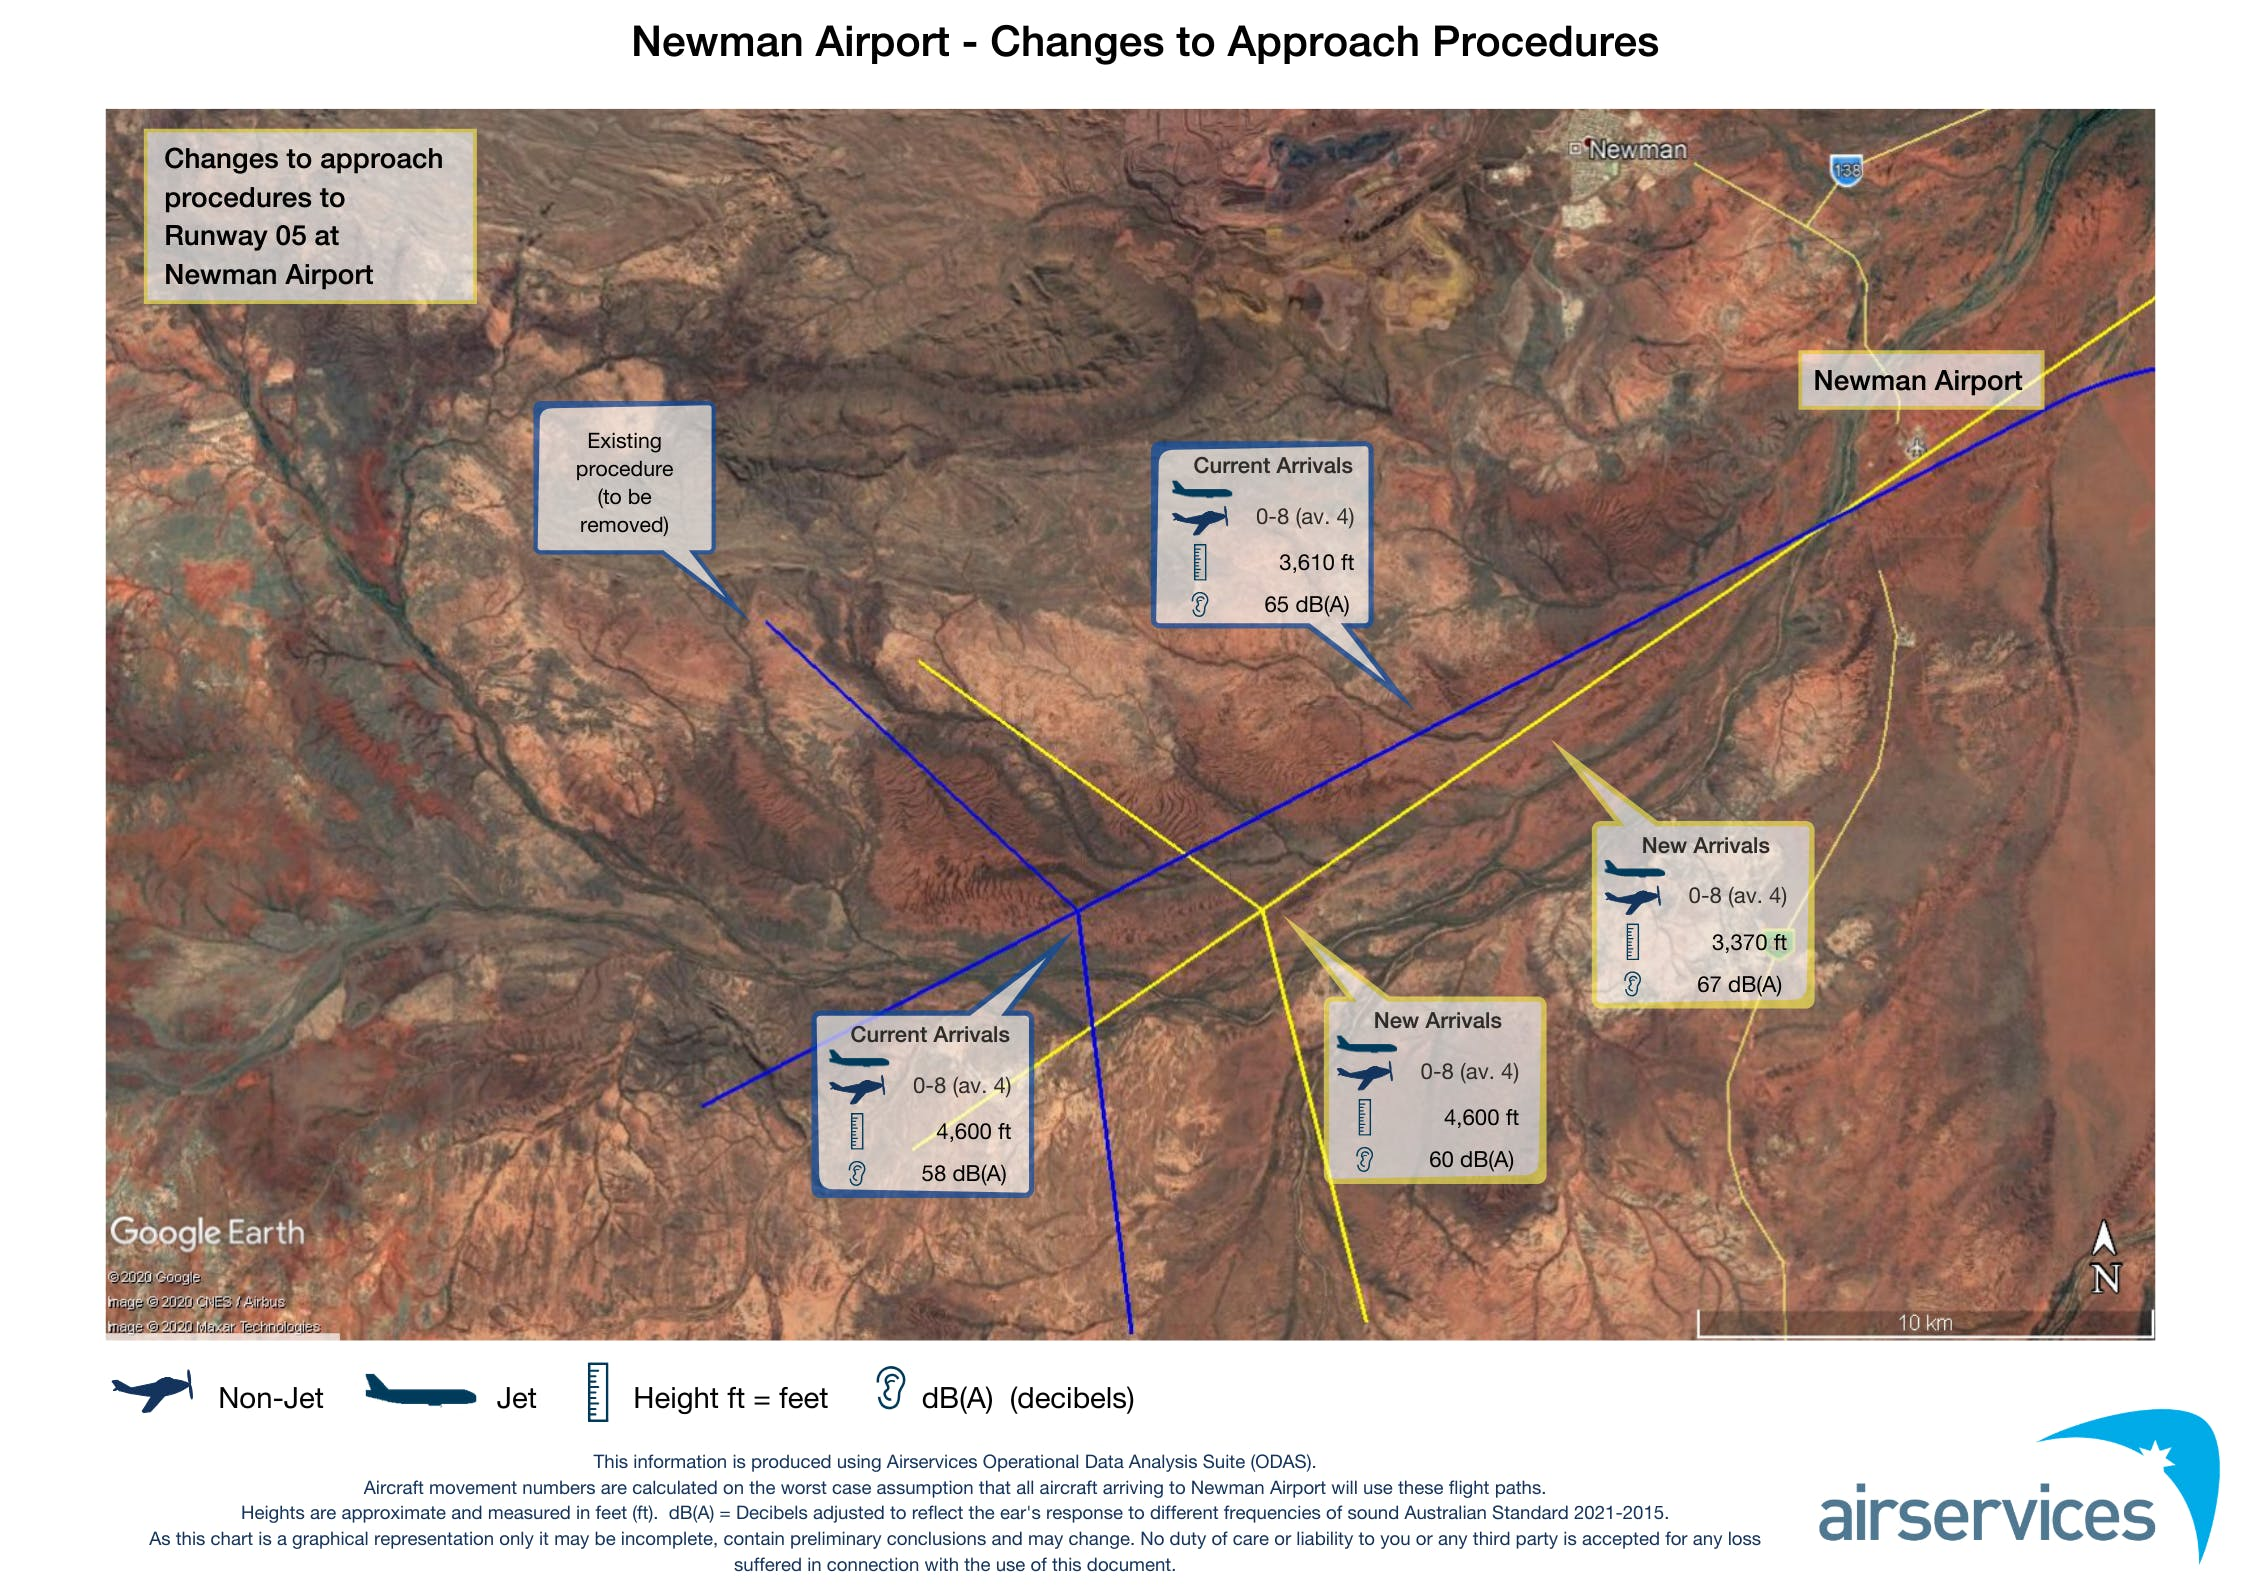 Newman Airport Changes to Approach Procedures (March 2020)